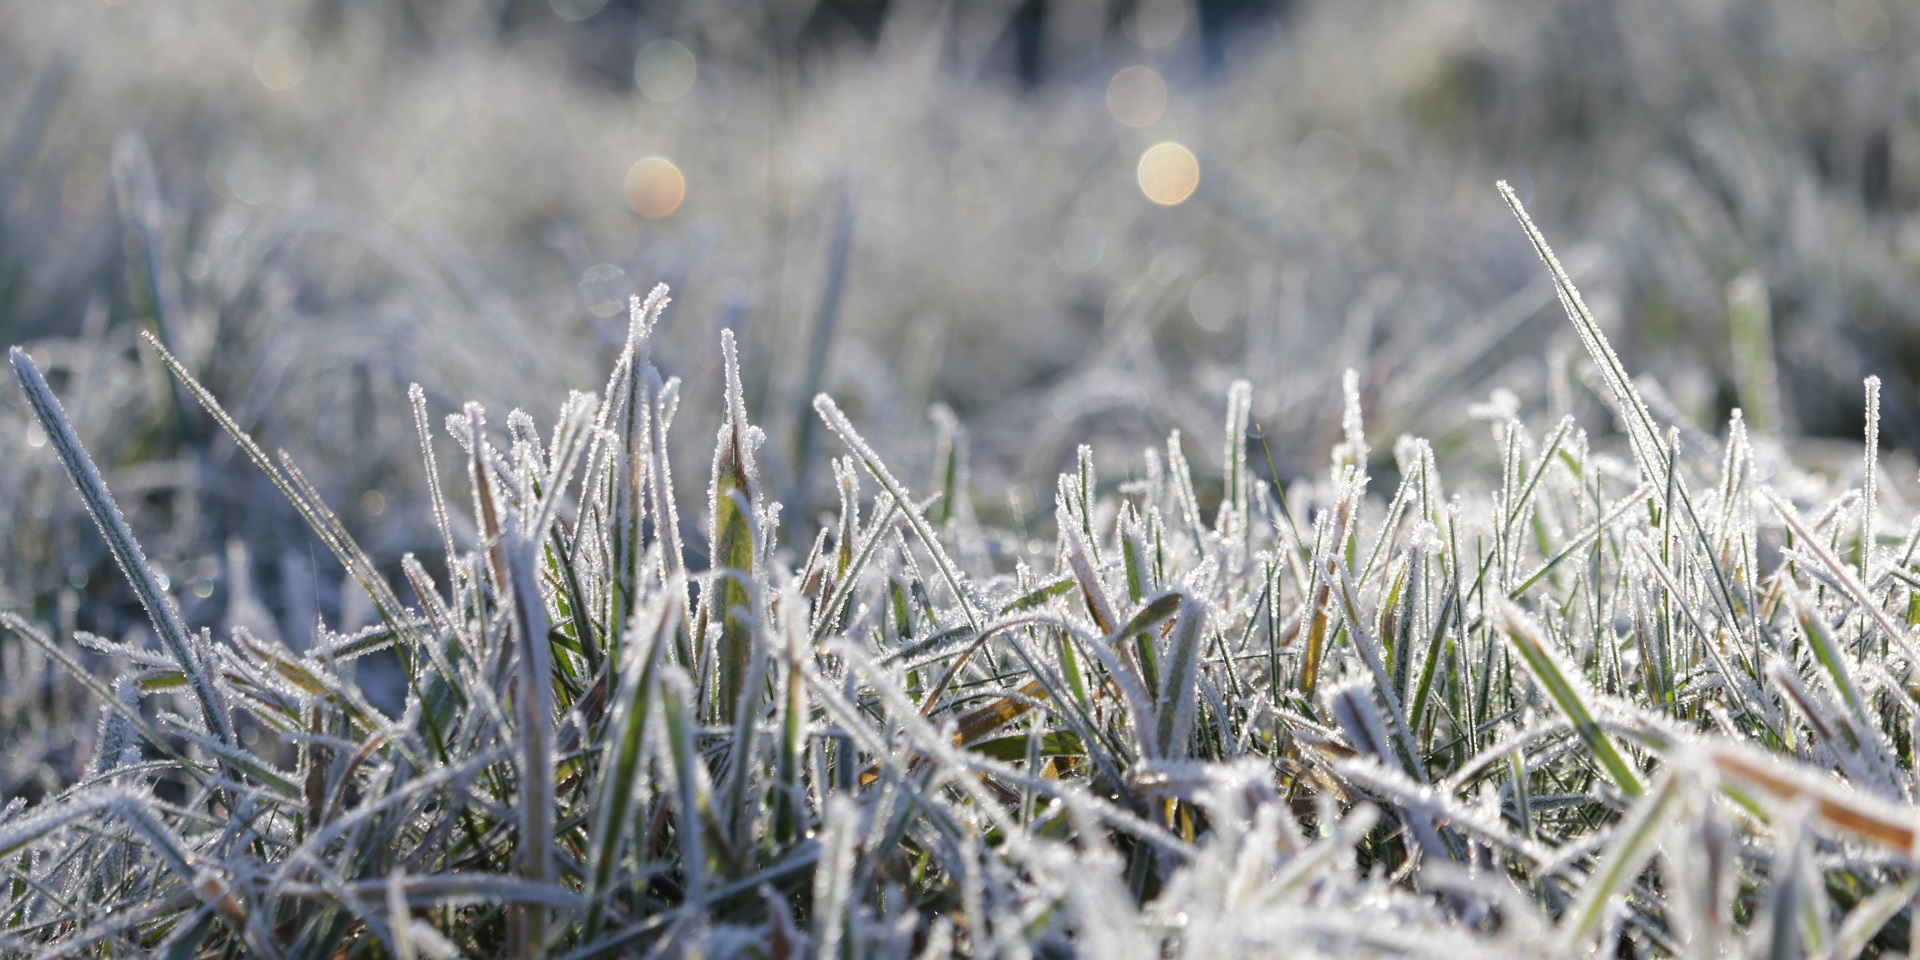 sunlight-reflect-on-frost-covered-grass.jpg